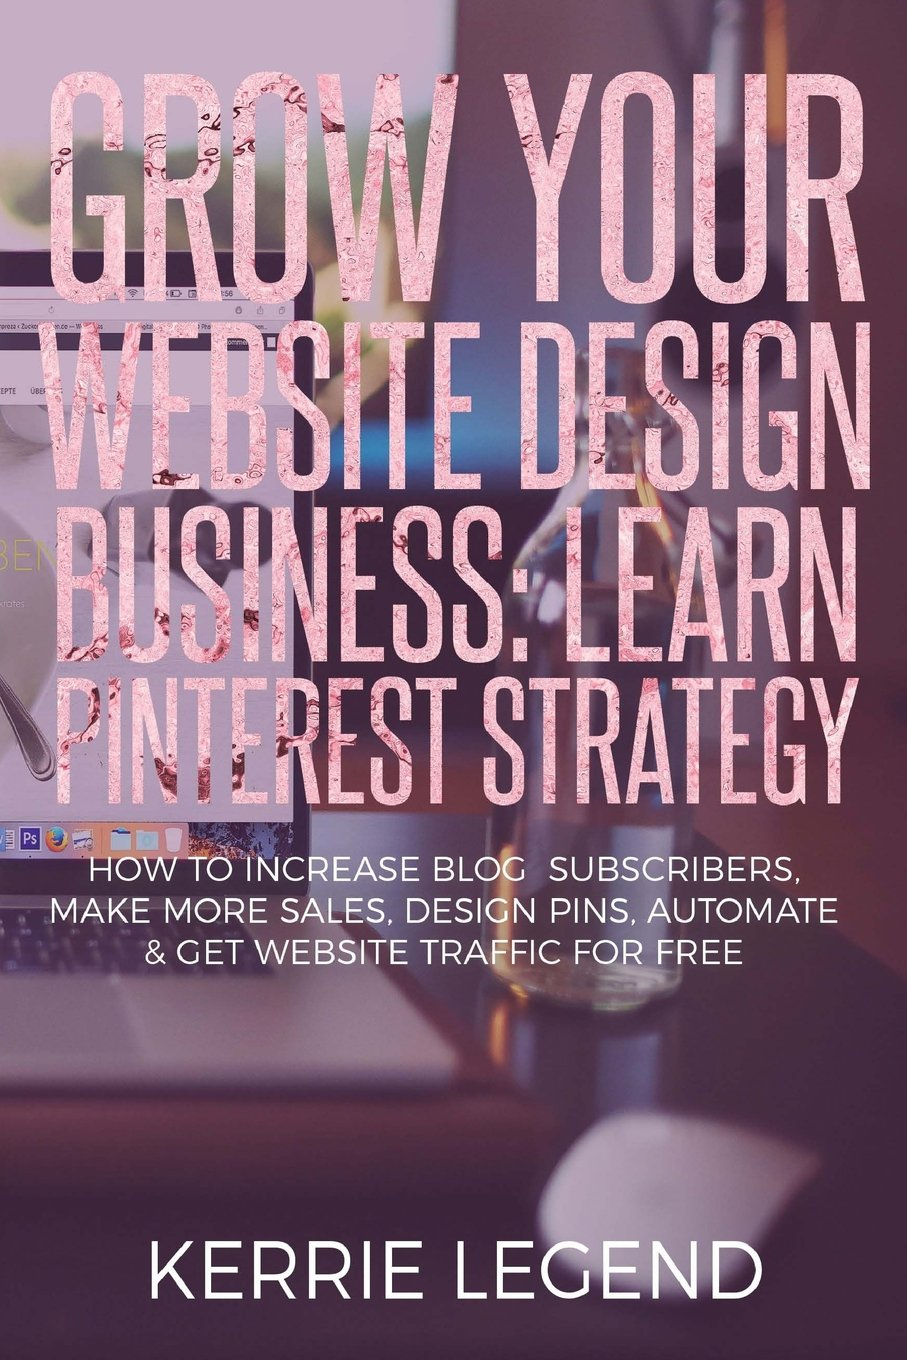 Grow Your Website Design Business: Learn Pinterest Strategy: How to Increase Blog Subscribers, Make More Sales, Design Pins, Automate & Get Website Traffic for Free ebook